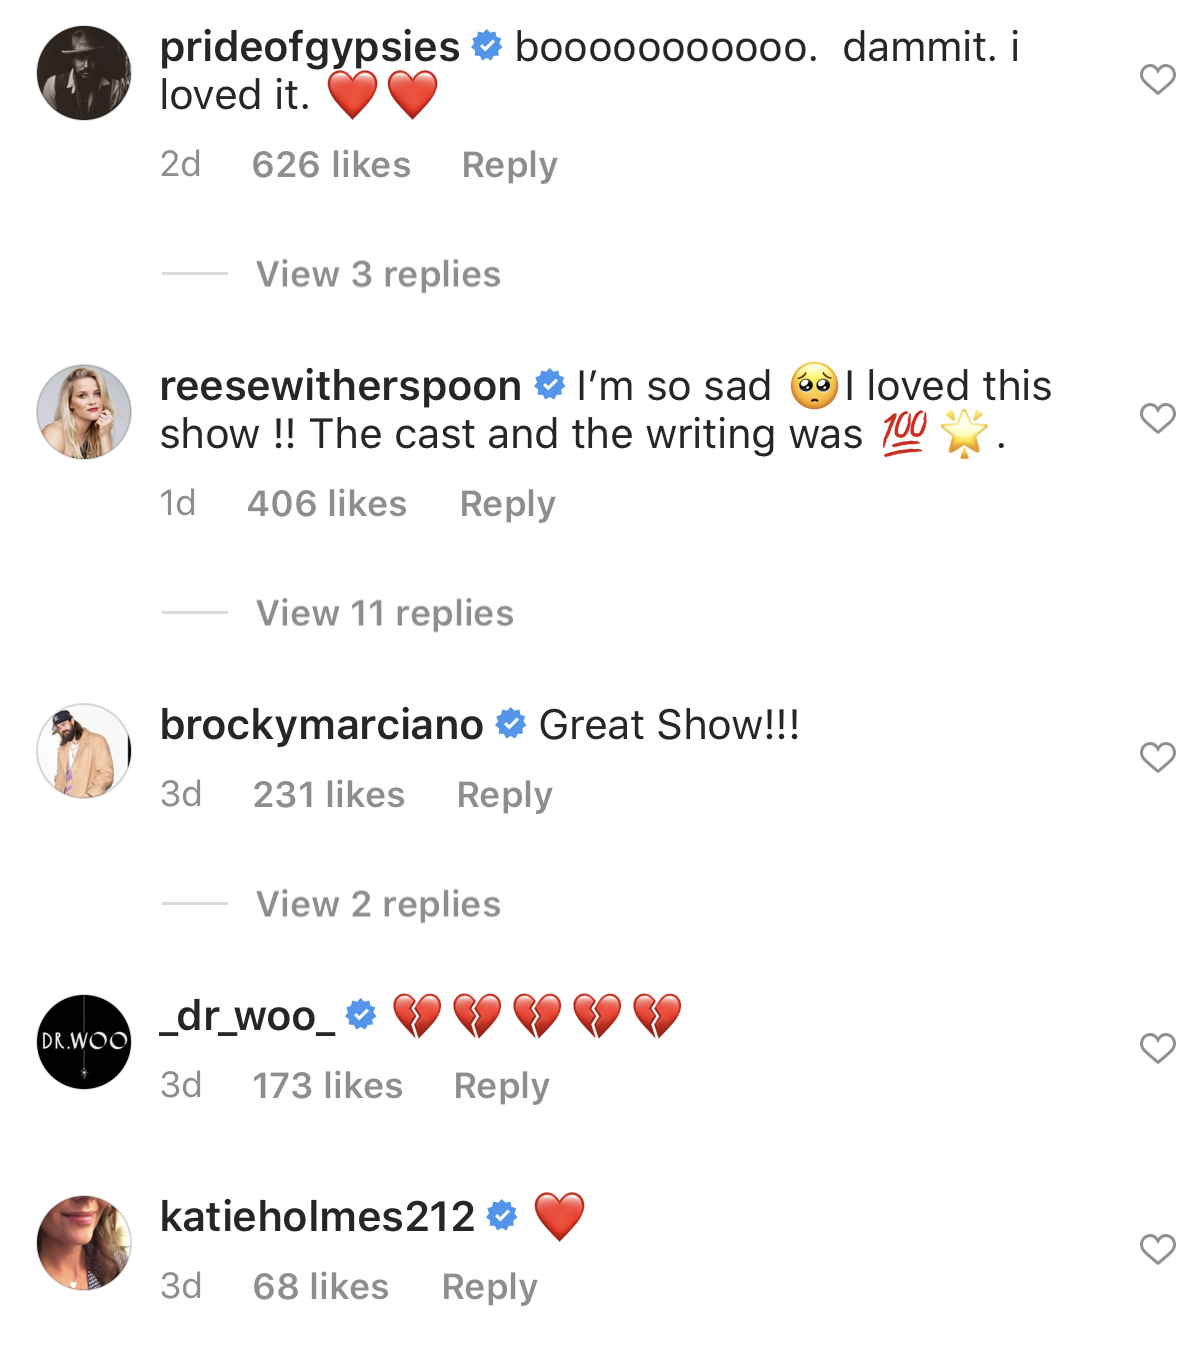 """""""Boooo, damnit I loved it,"""" commented by Jason Momoa and """"I'm so sad, I loved this show, the cast and writing was 100%"""" commented by Reese Witherspoon"""